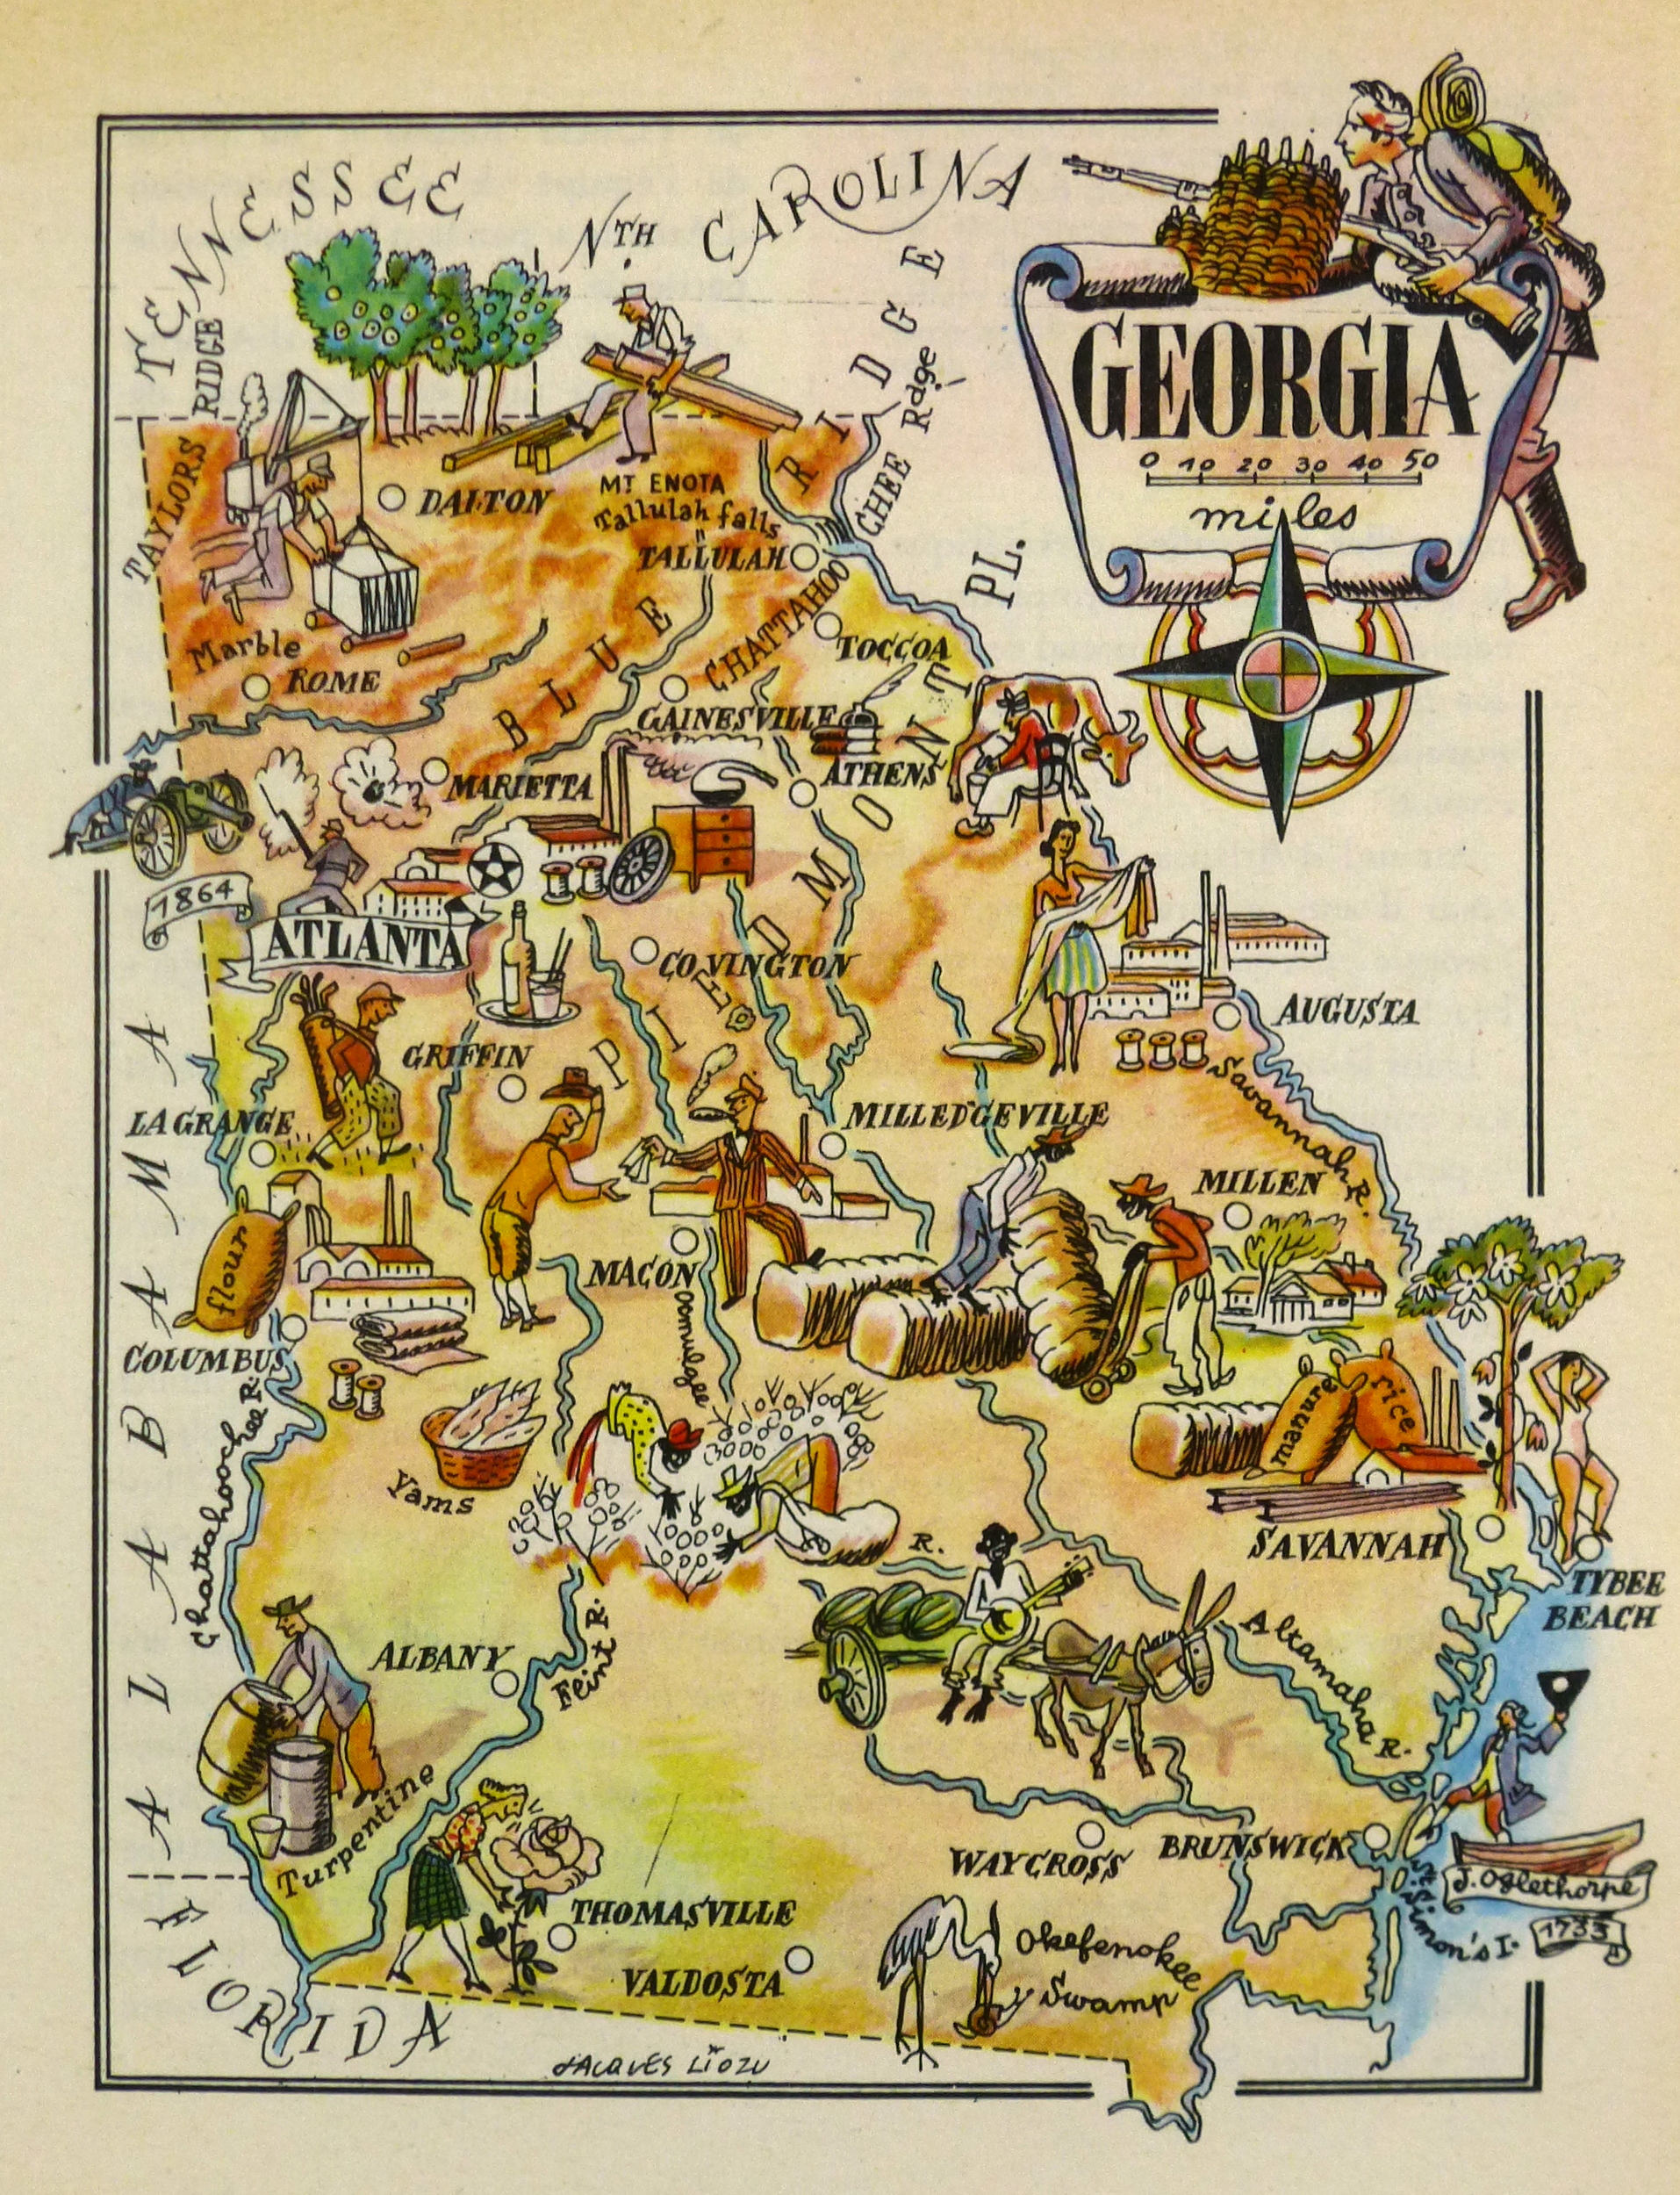 Georgia Pictorial Map, 1946